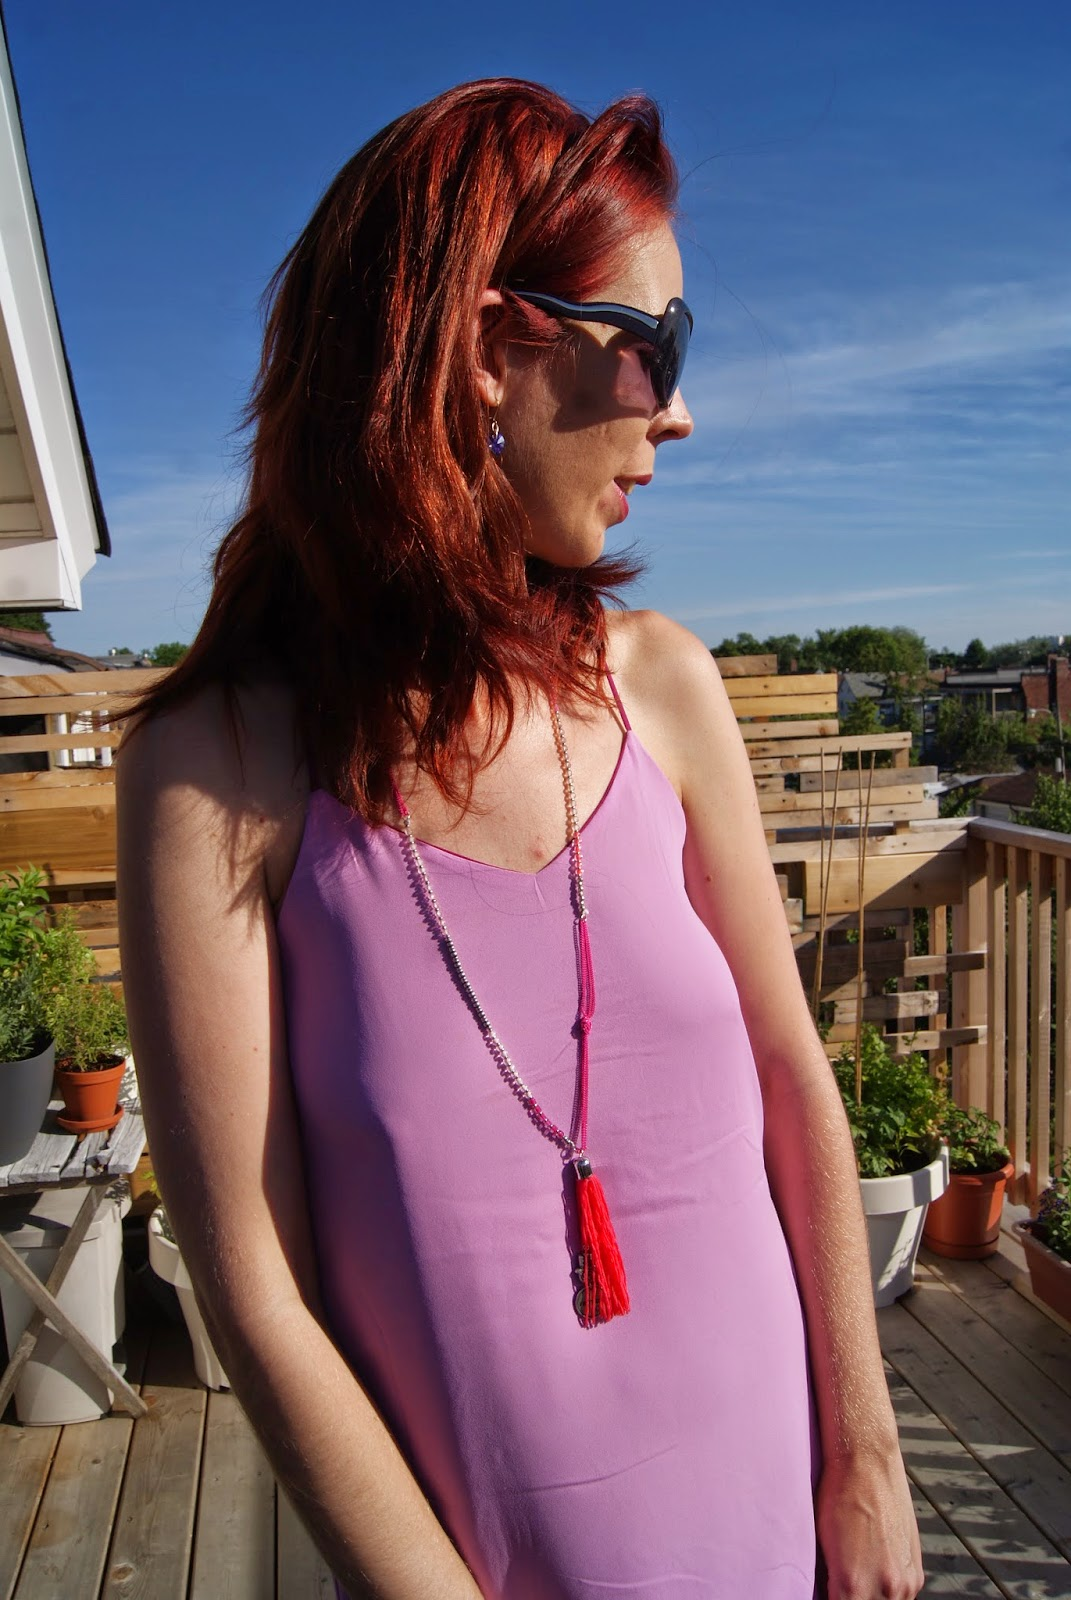 Reversible Cami Dress and necklace from Express, Walmart Shoes, Urban Outfitters Clutch,Fashion, Style, Orchid, Melanie_Ps, The Purple Scarf, Toronto, Outfit, Travel, Cami, accessories, Heels